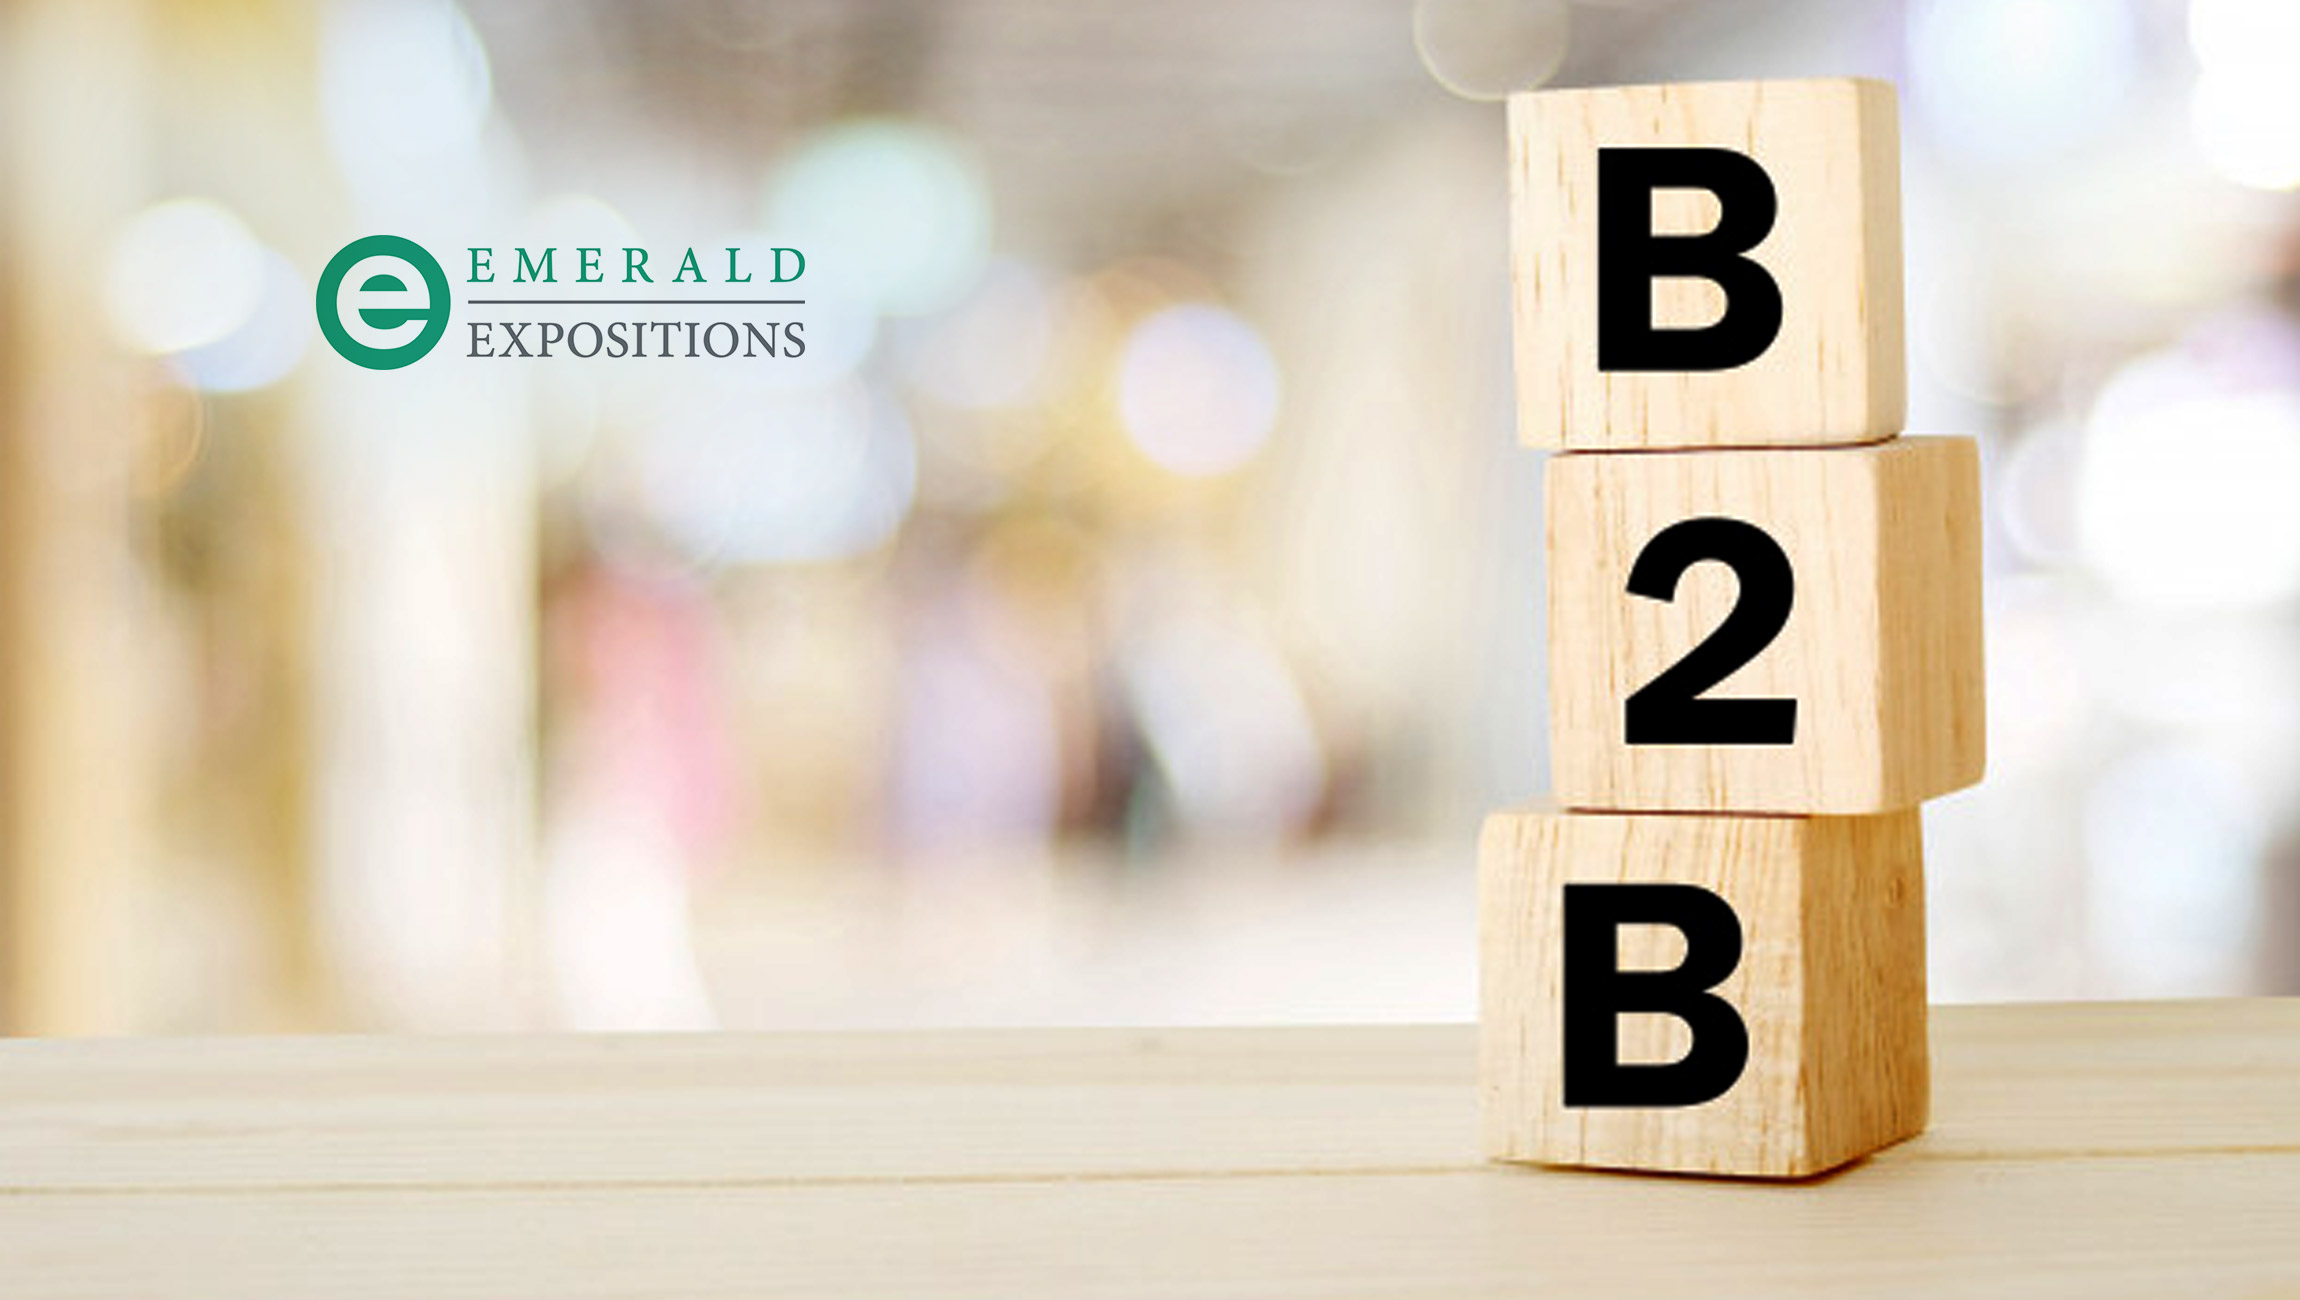 Emerald Expositions Acquires G3 Communications: Adds Events and Expertise in B2B Marketing; Strengthens Retail Portfolio